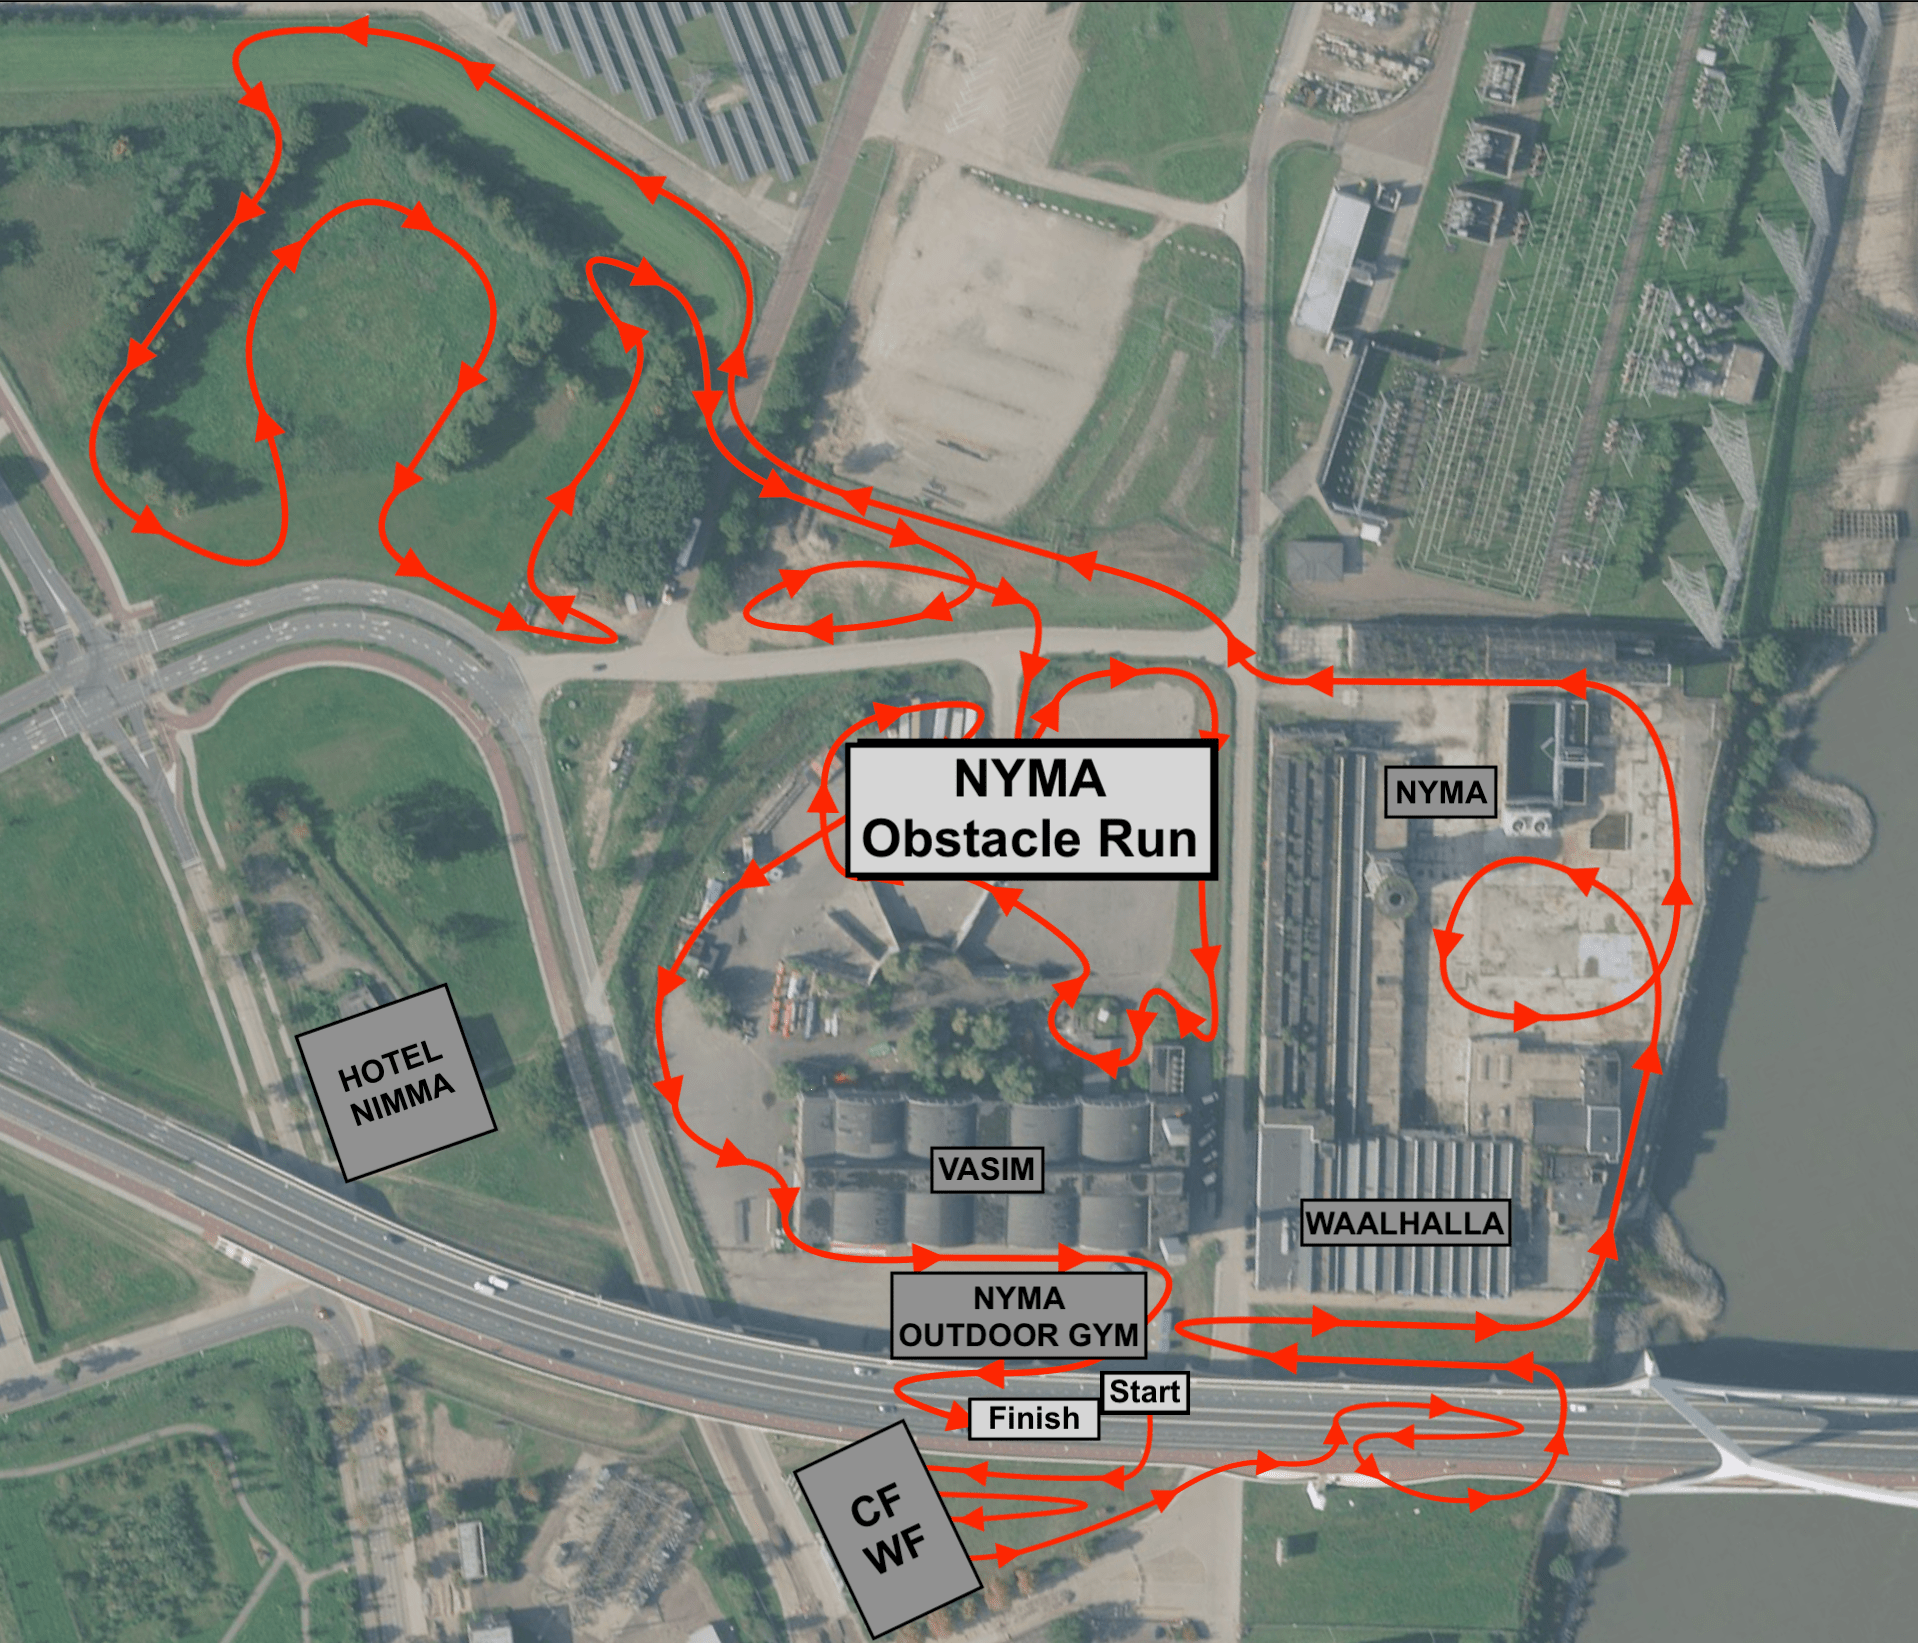 NYMA Obstacle Run - Route